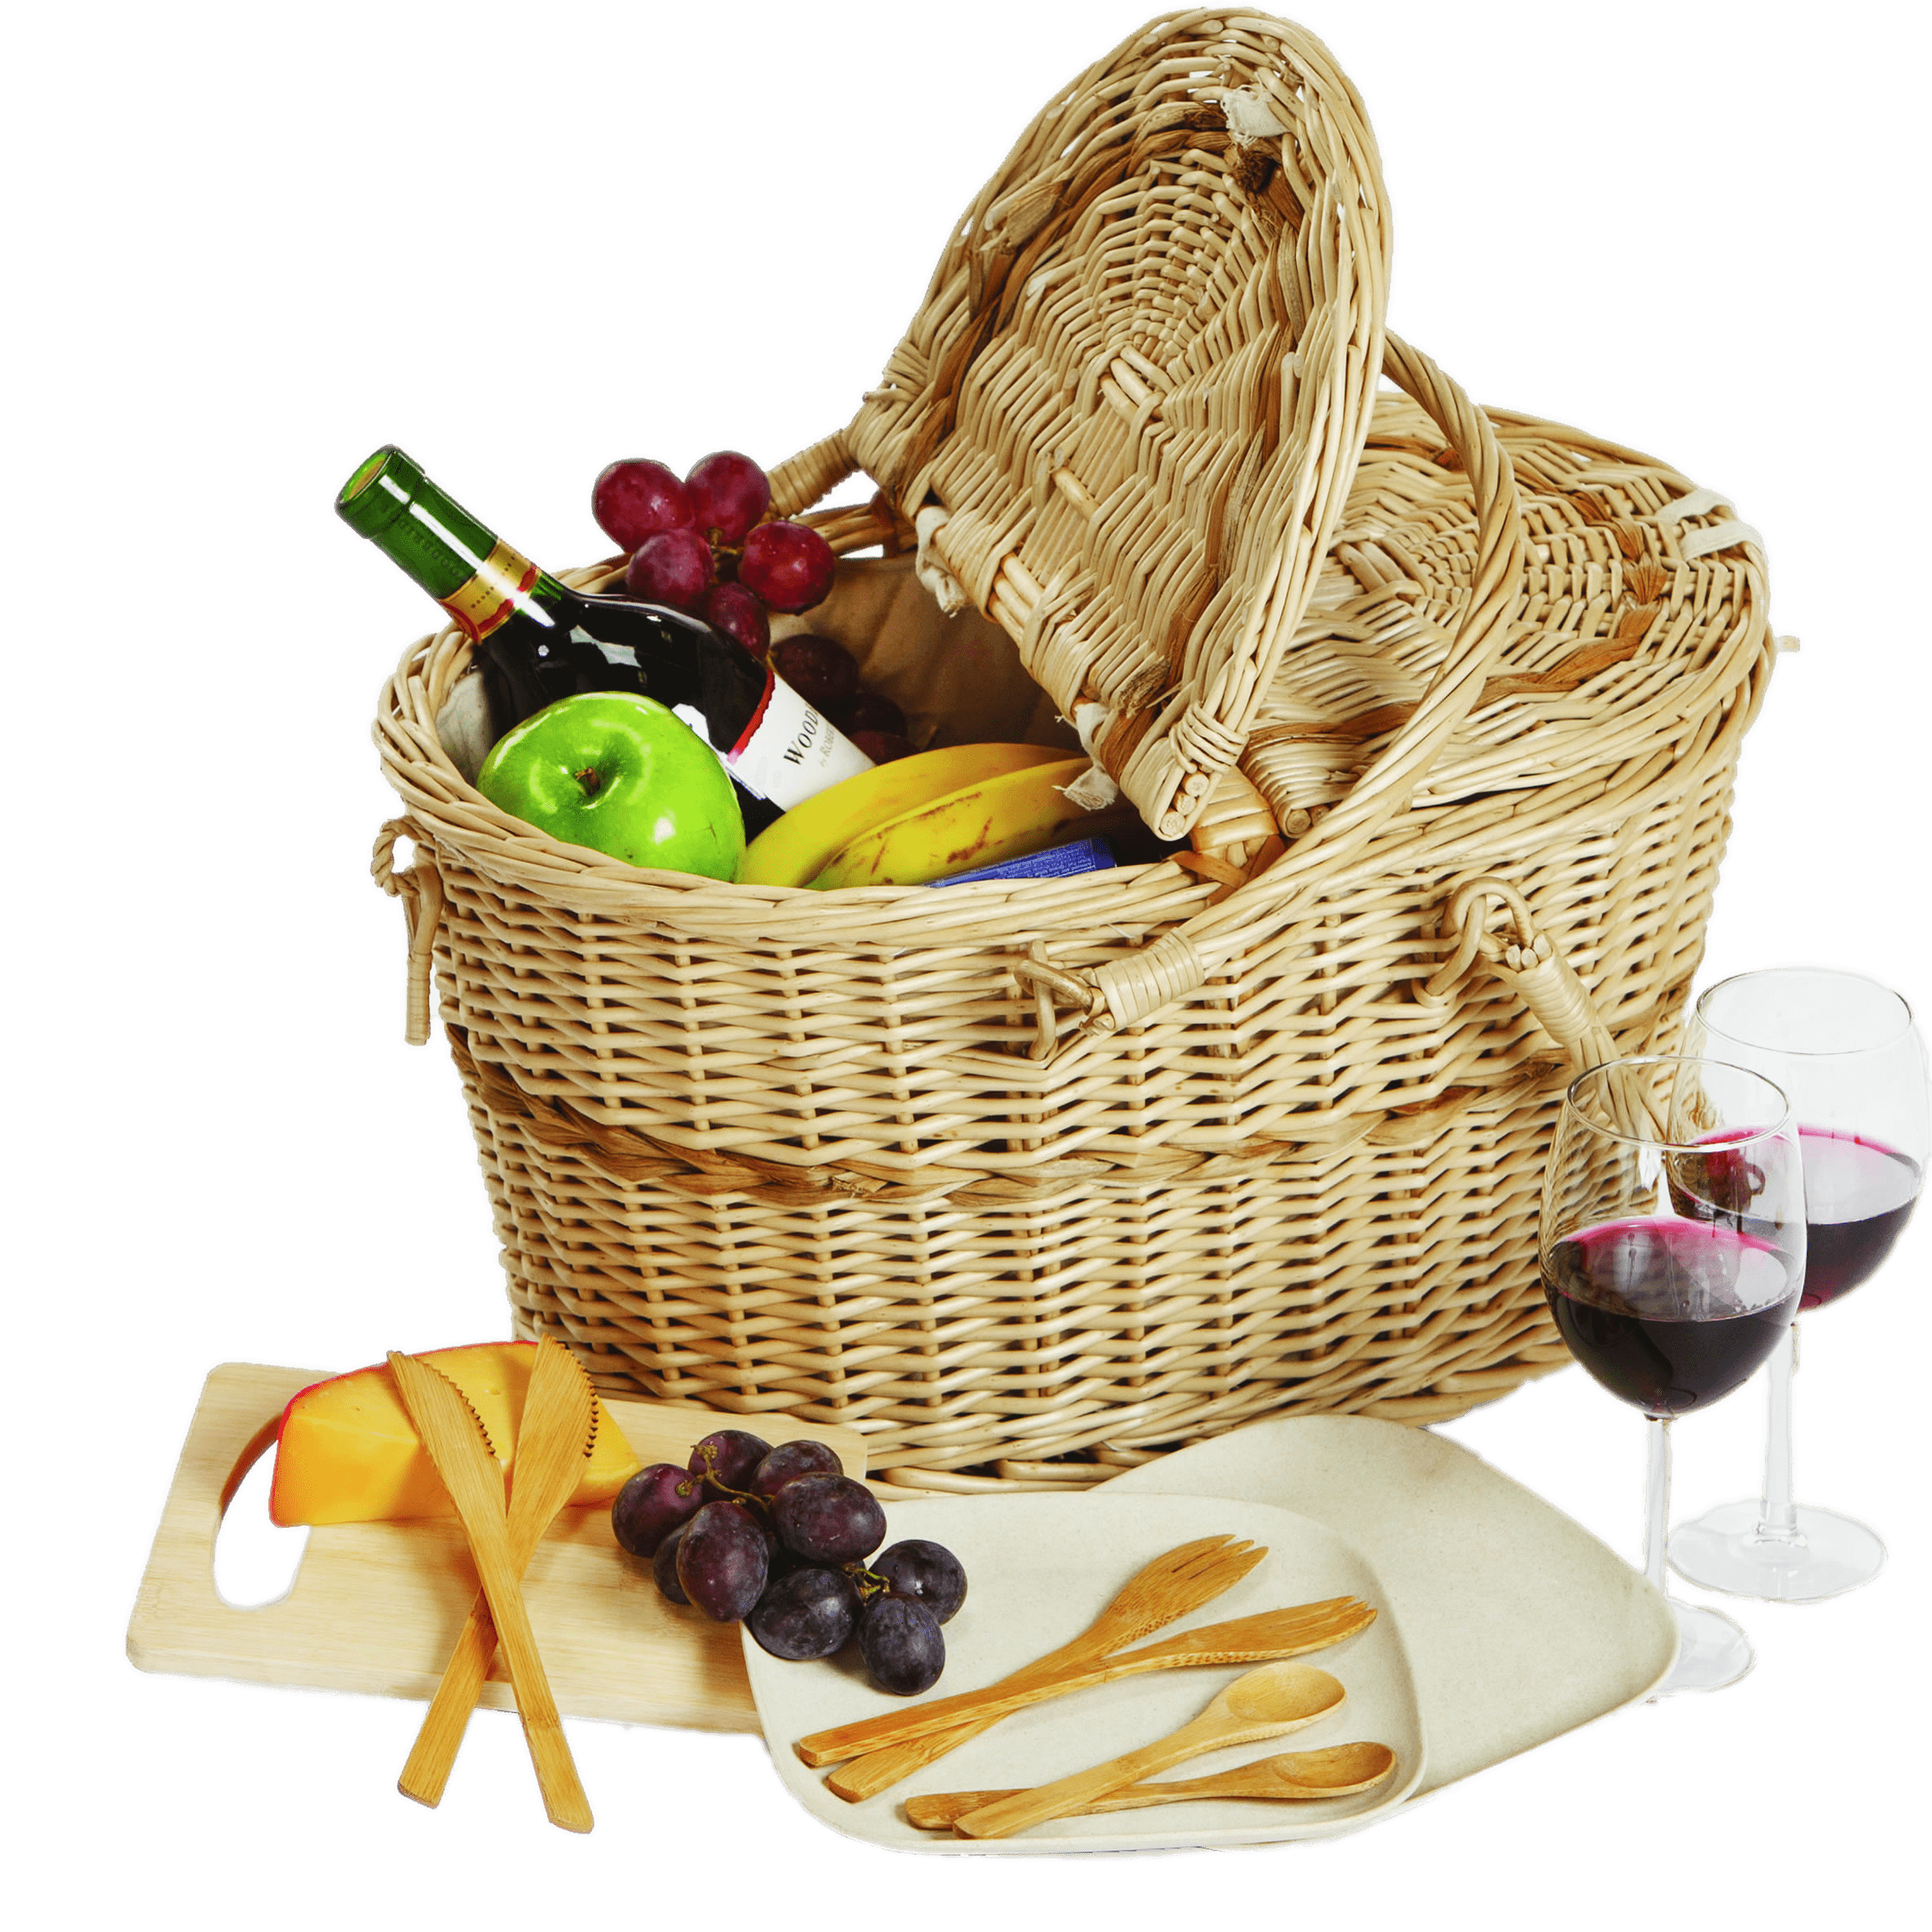 Gift basket picnic basket clipart t hamper pencil and in color picnic